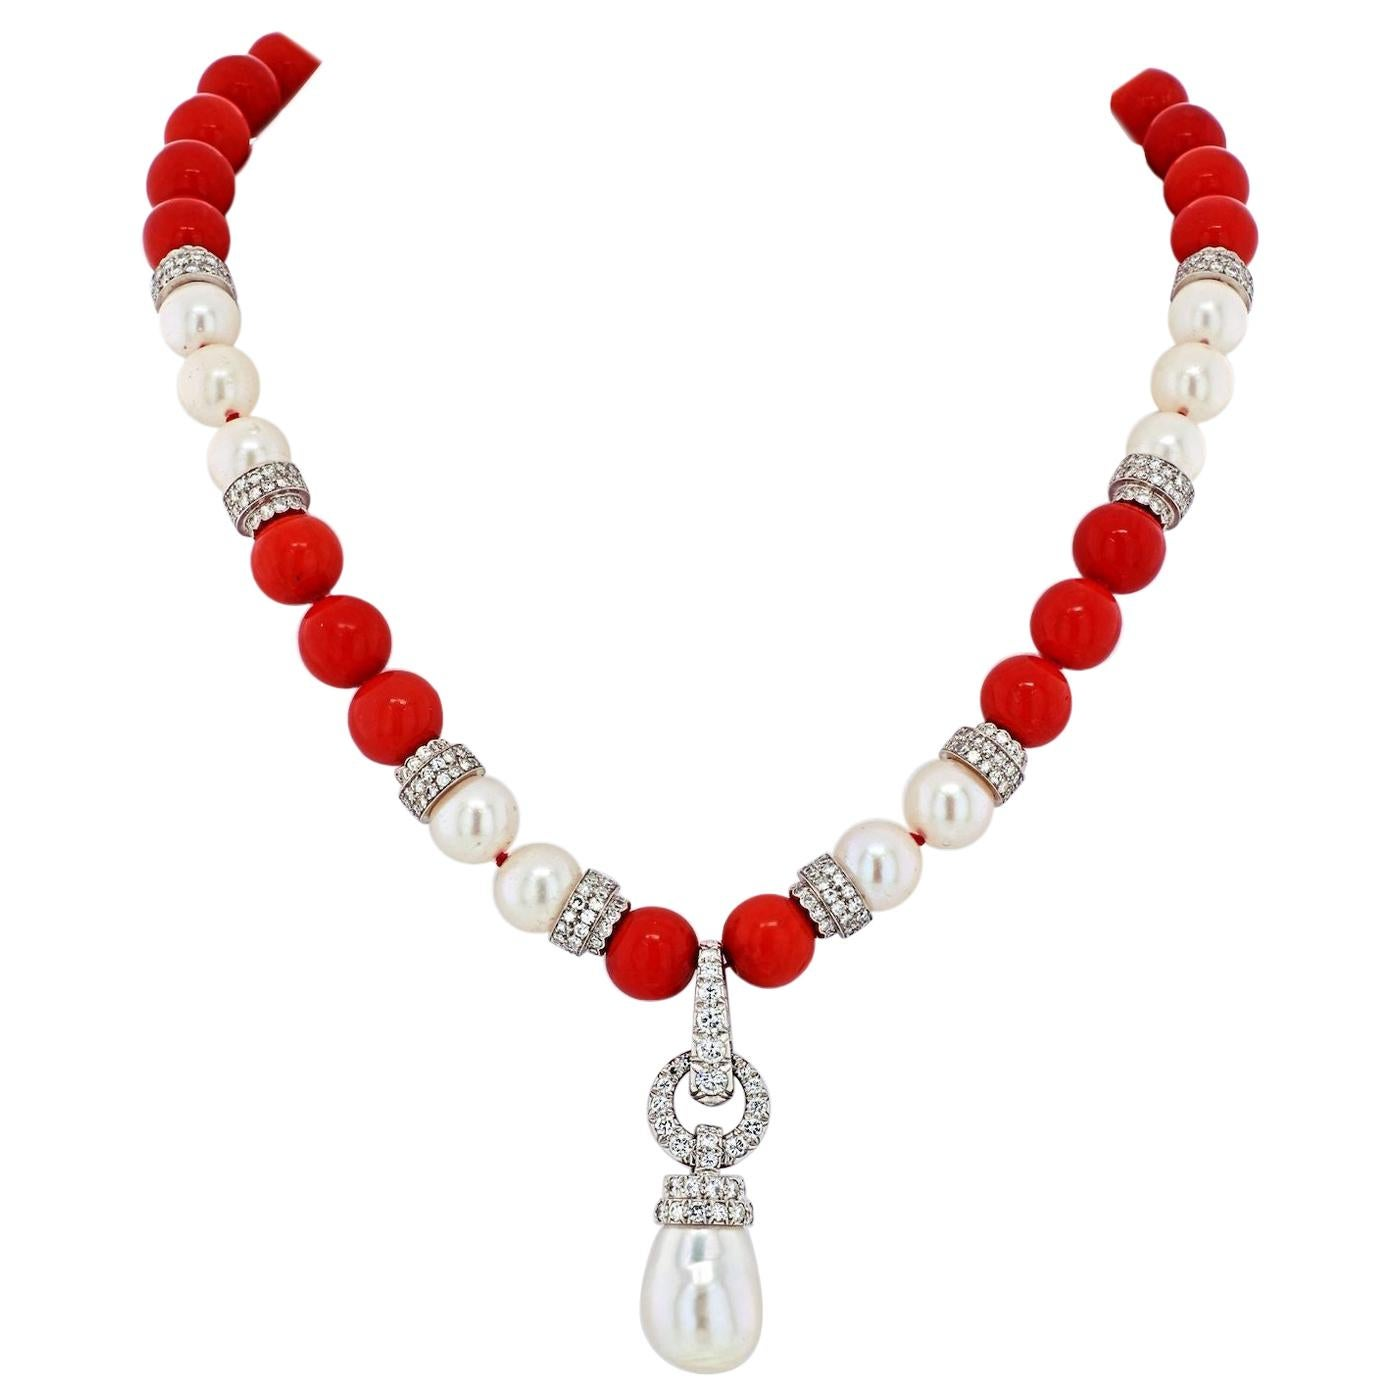 David Webb Platinum & 18k White Gold Coral, Diamond and Pearl Bead Necklace